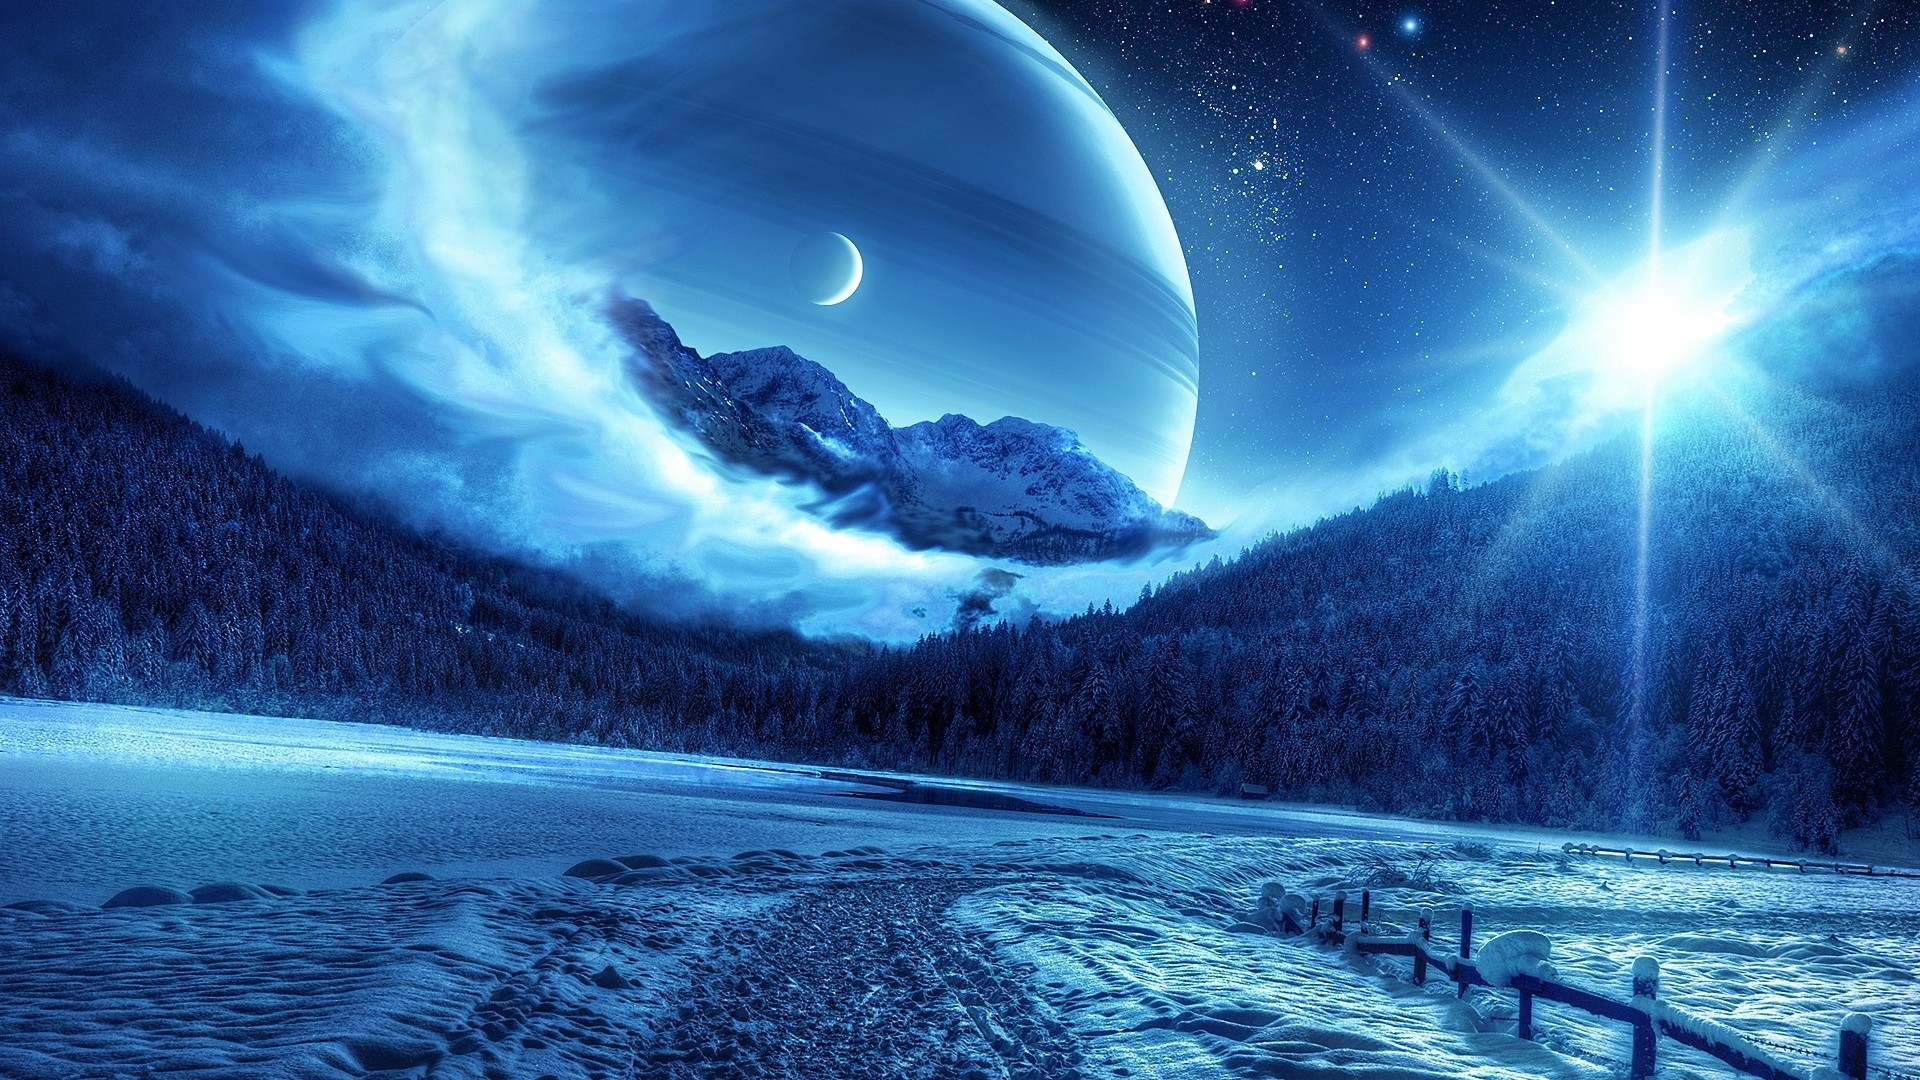 1920x1080 Preview wallpaper winter, night, mountains, road, planet, fantastic  landscape